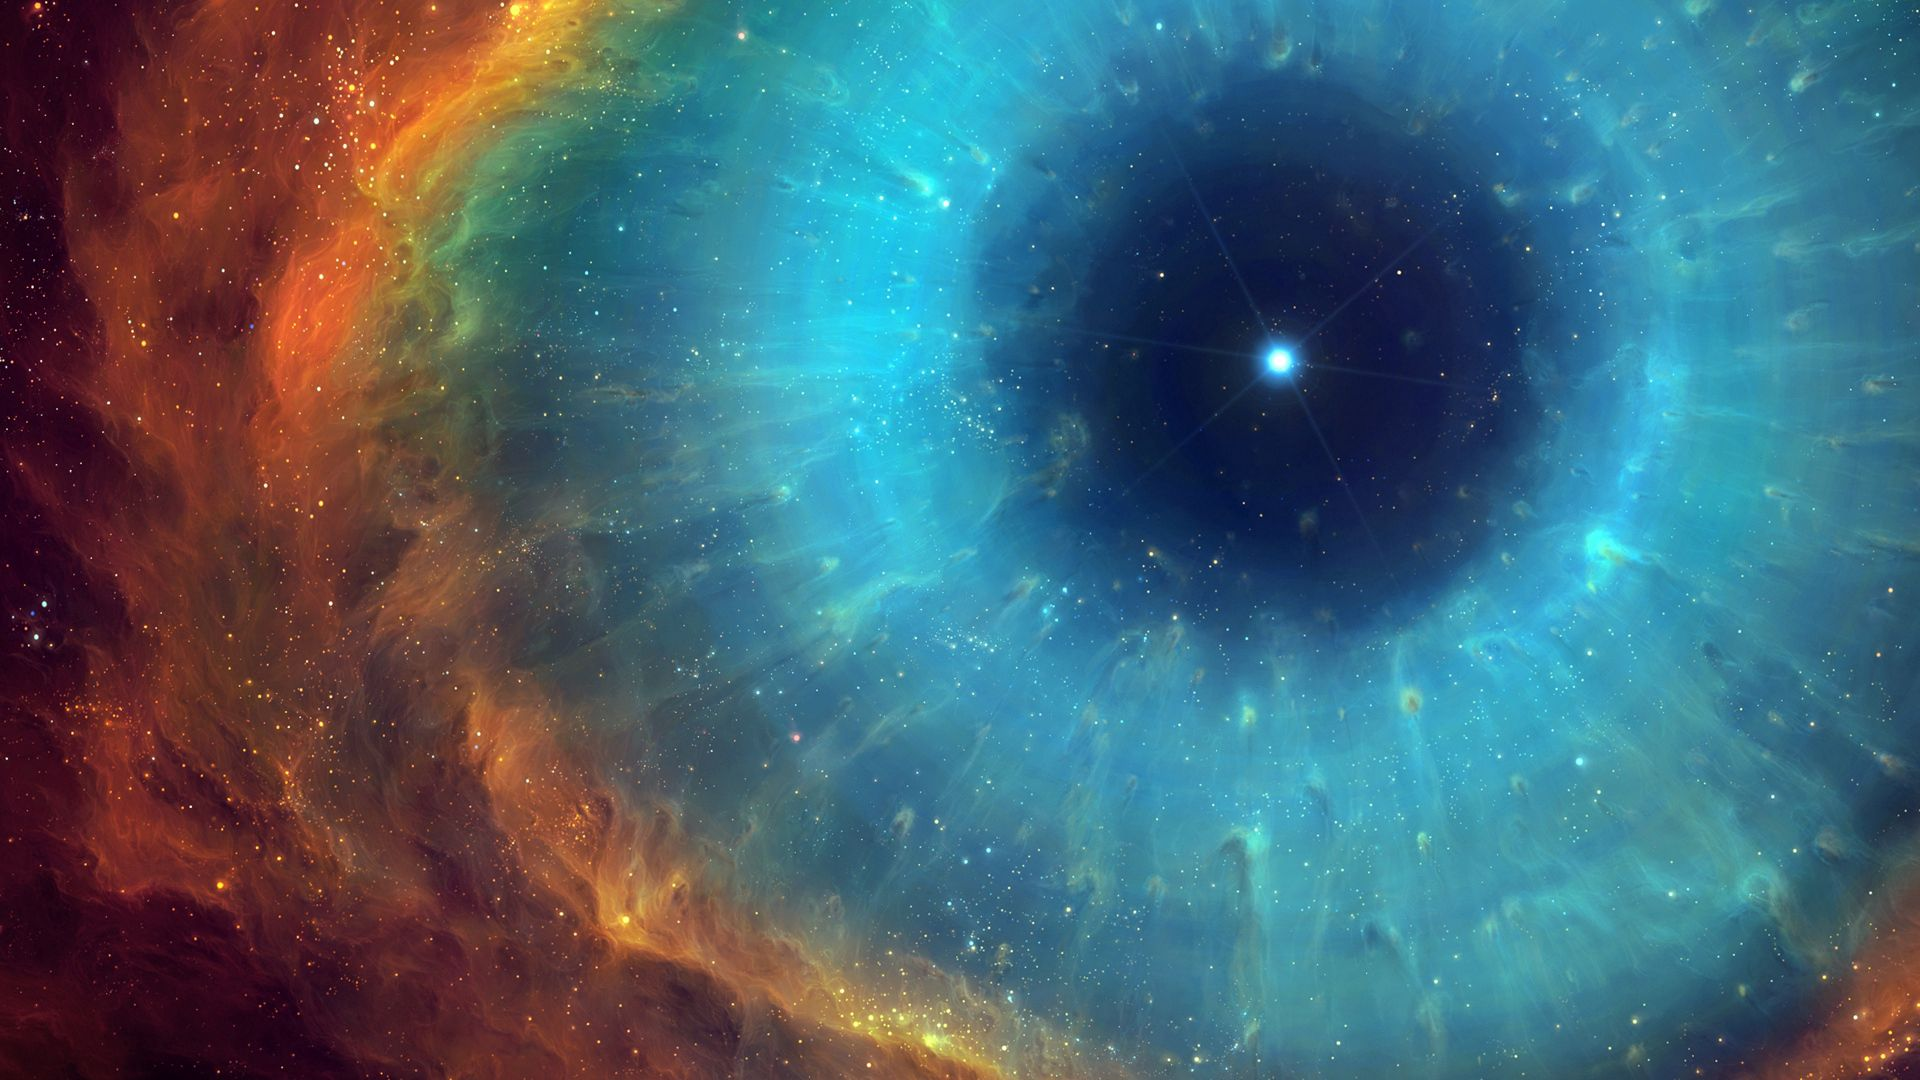 111915 download wallpaper Abstract, Art, Universe, Nebula, Star, Energy screensavers and pictures for free